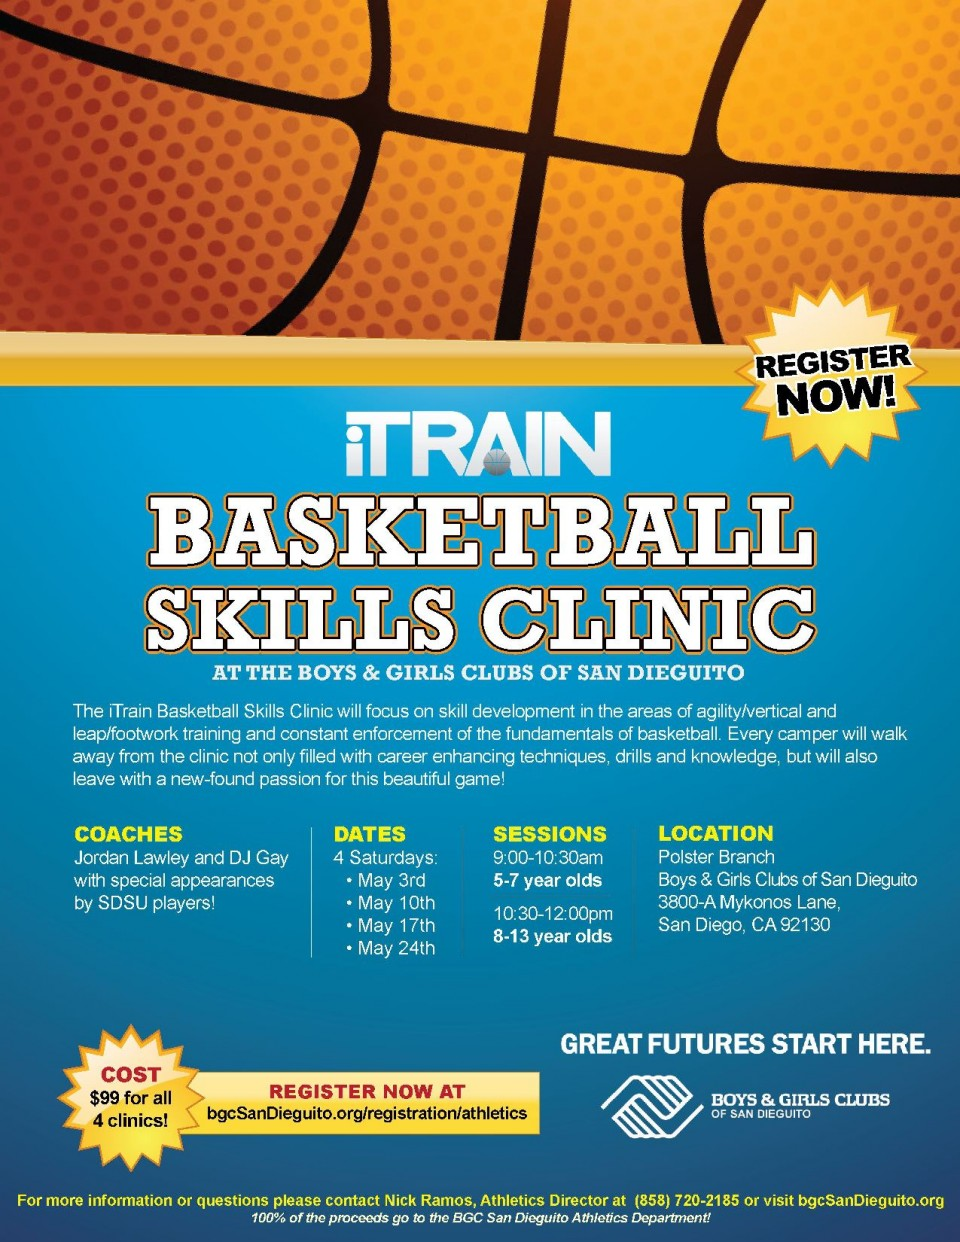 007 Breathtaking Basketball Flyer Template Free Image  Brochure Tryout Camp960